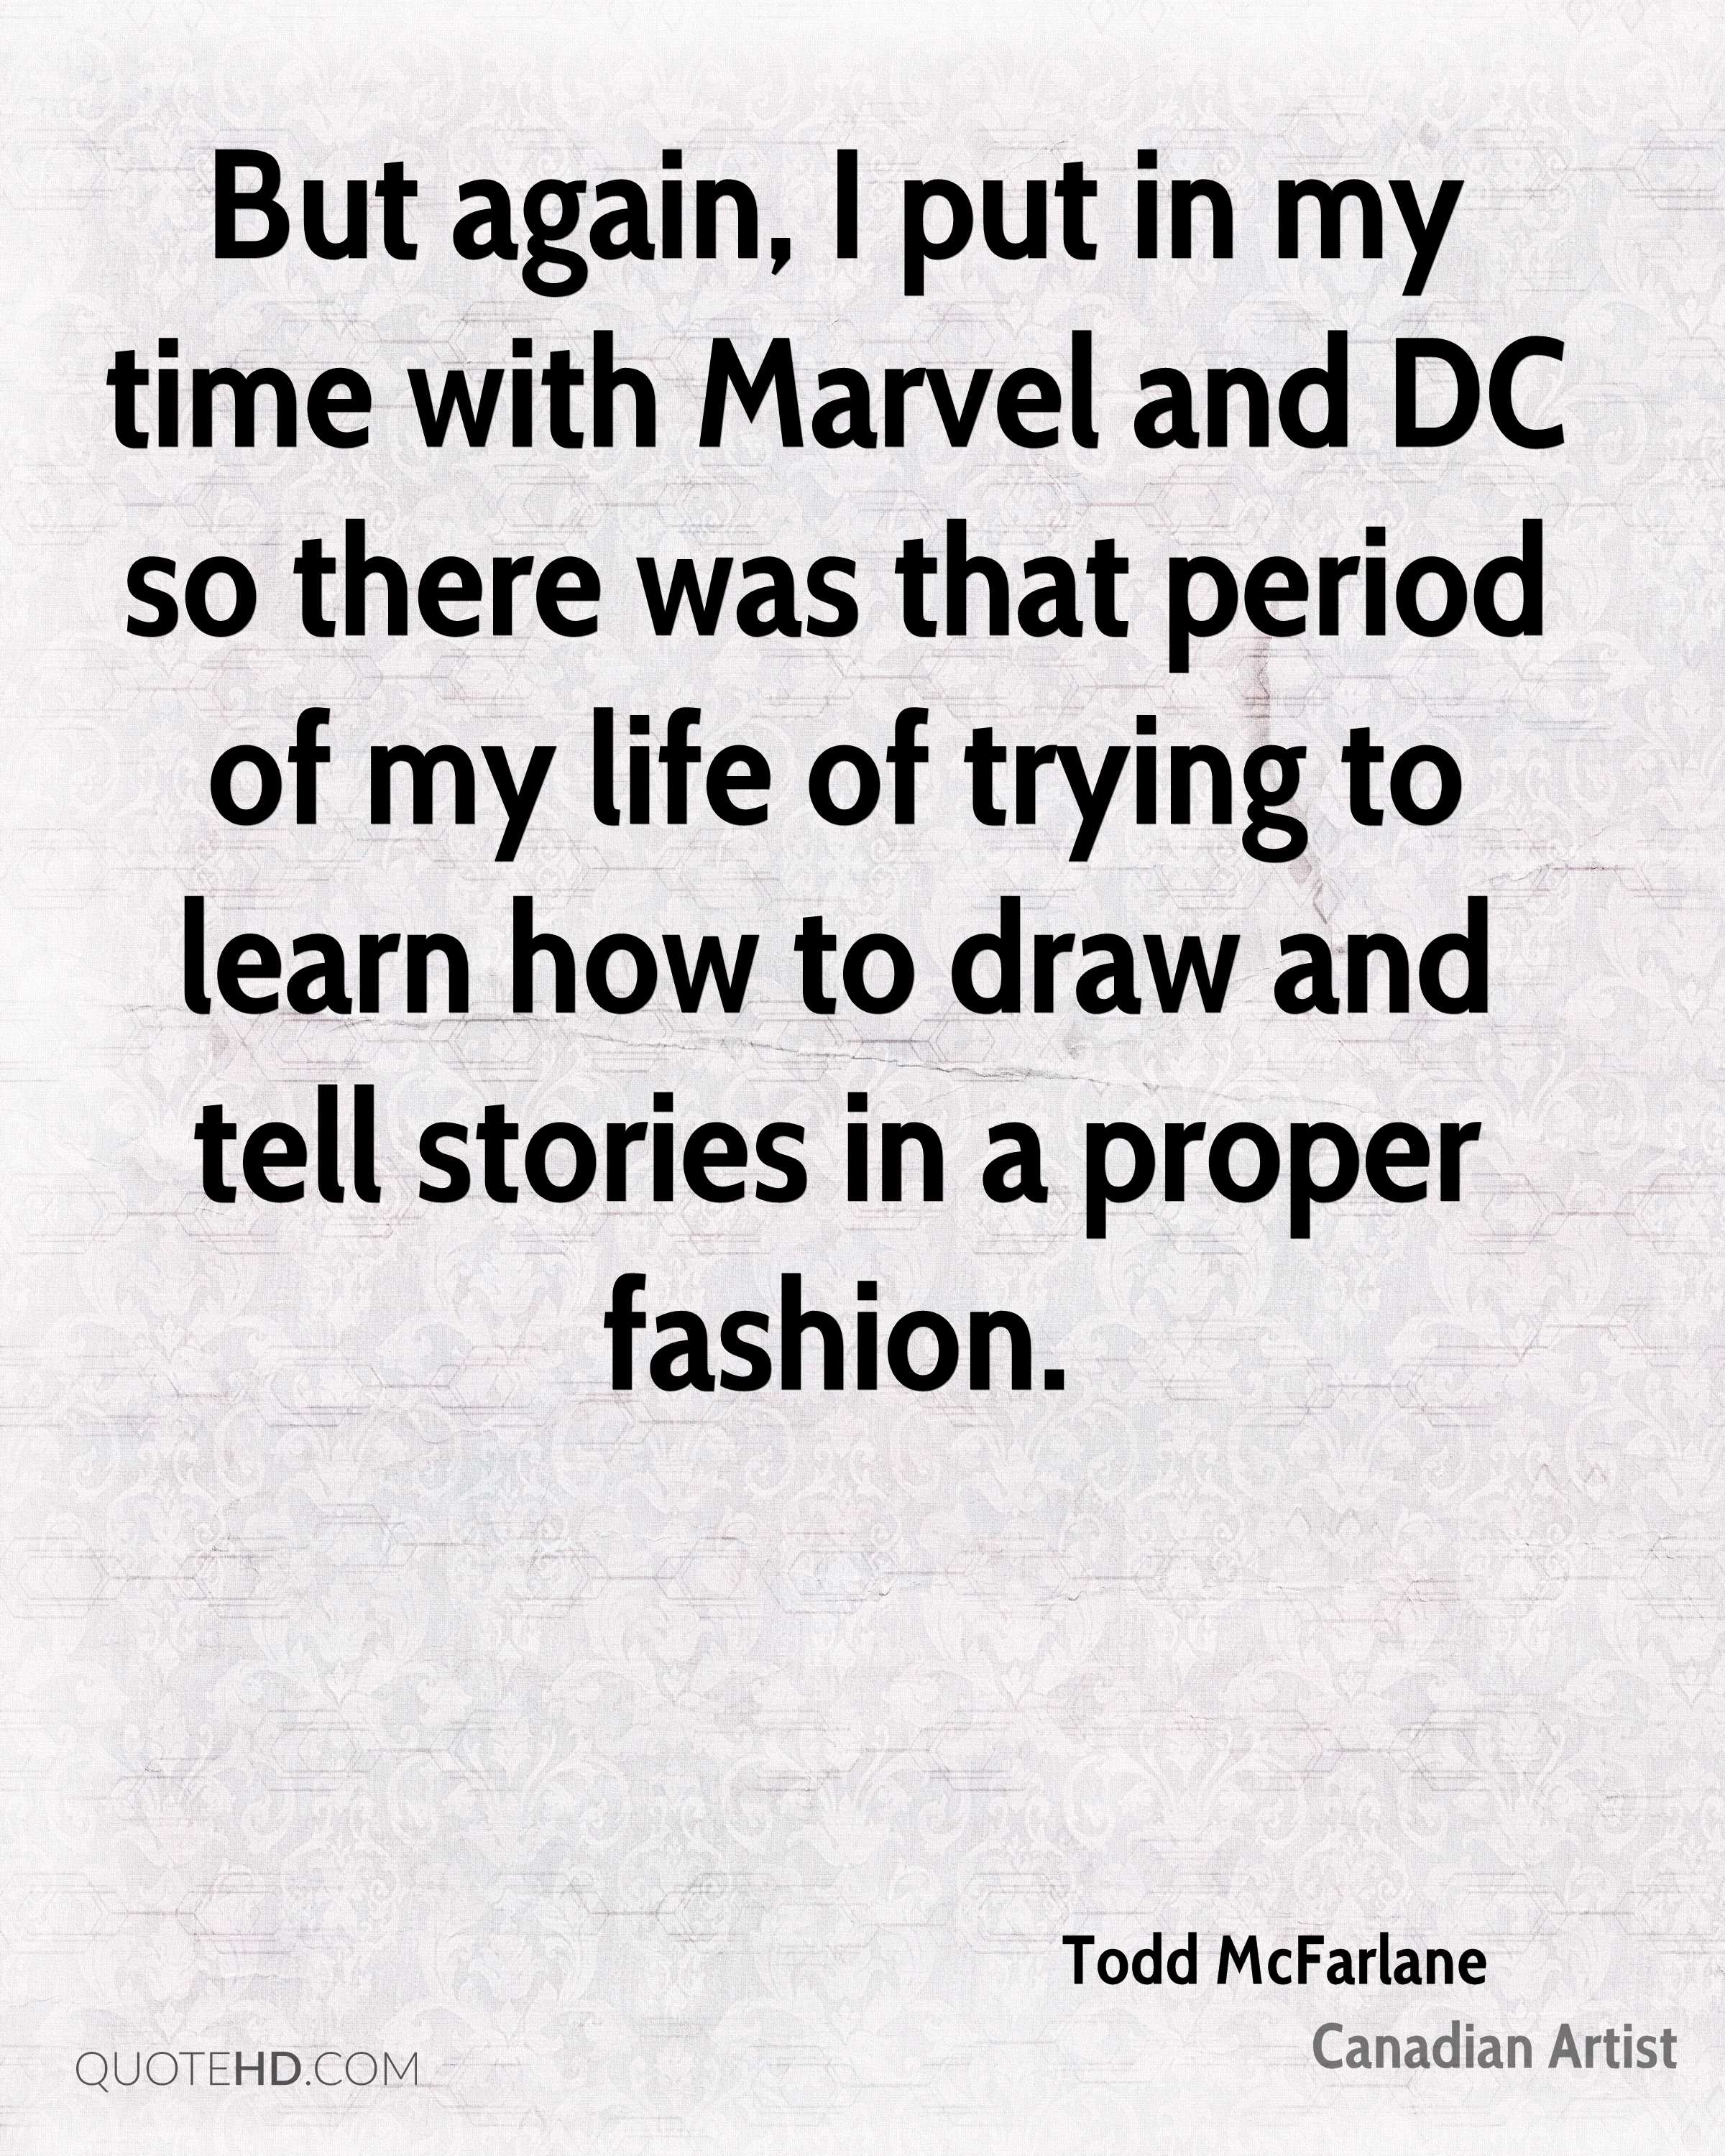 But again, I put in my time with Marvel and DC so there was that period of my life of trying to learn how to draw and tell stories in a proper fashion.